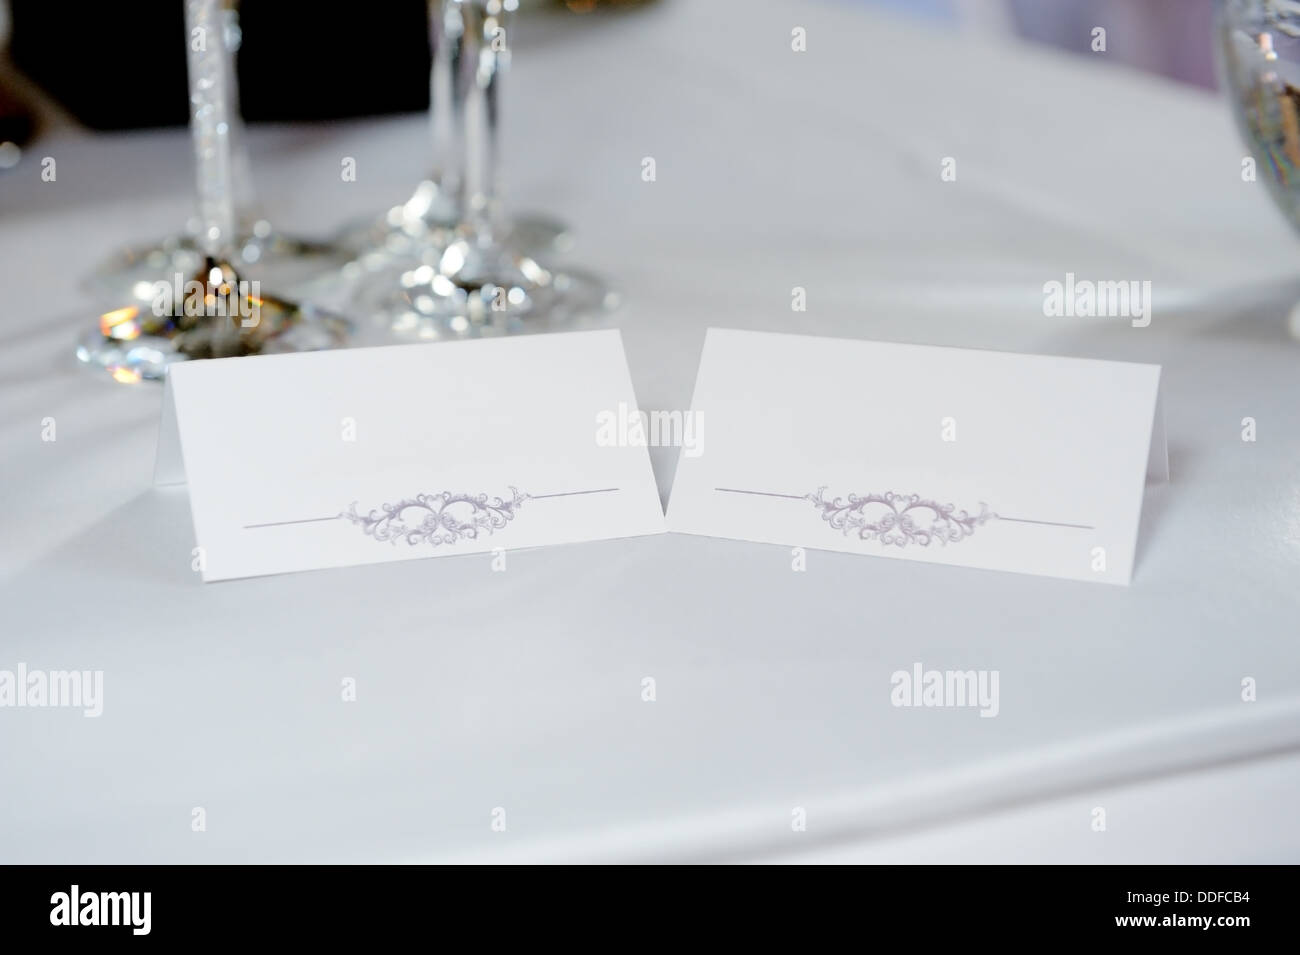 Wedding Reception Name Card To Reserve Place In The Evening